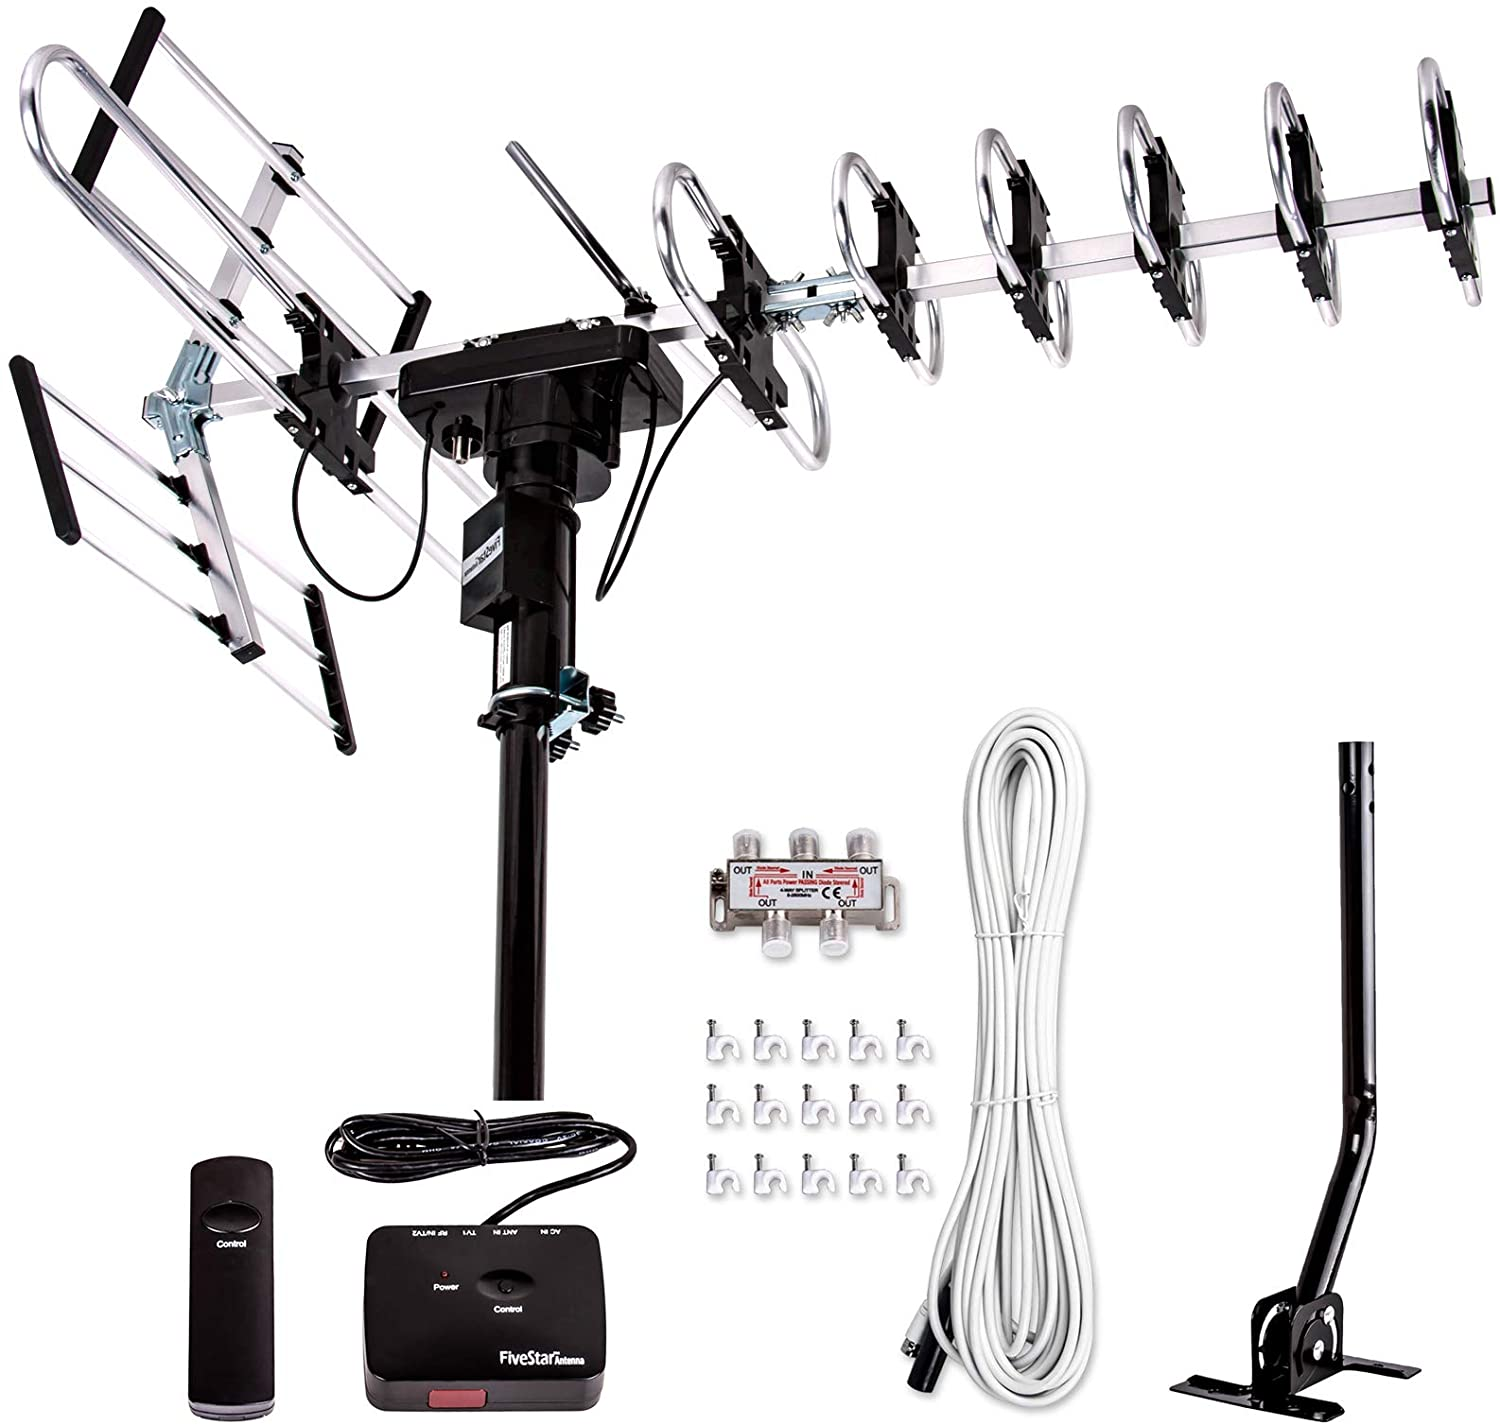 Five Star [Newest 2020] Outdoor Digital Amplified HDTV Antenna